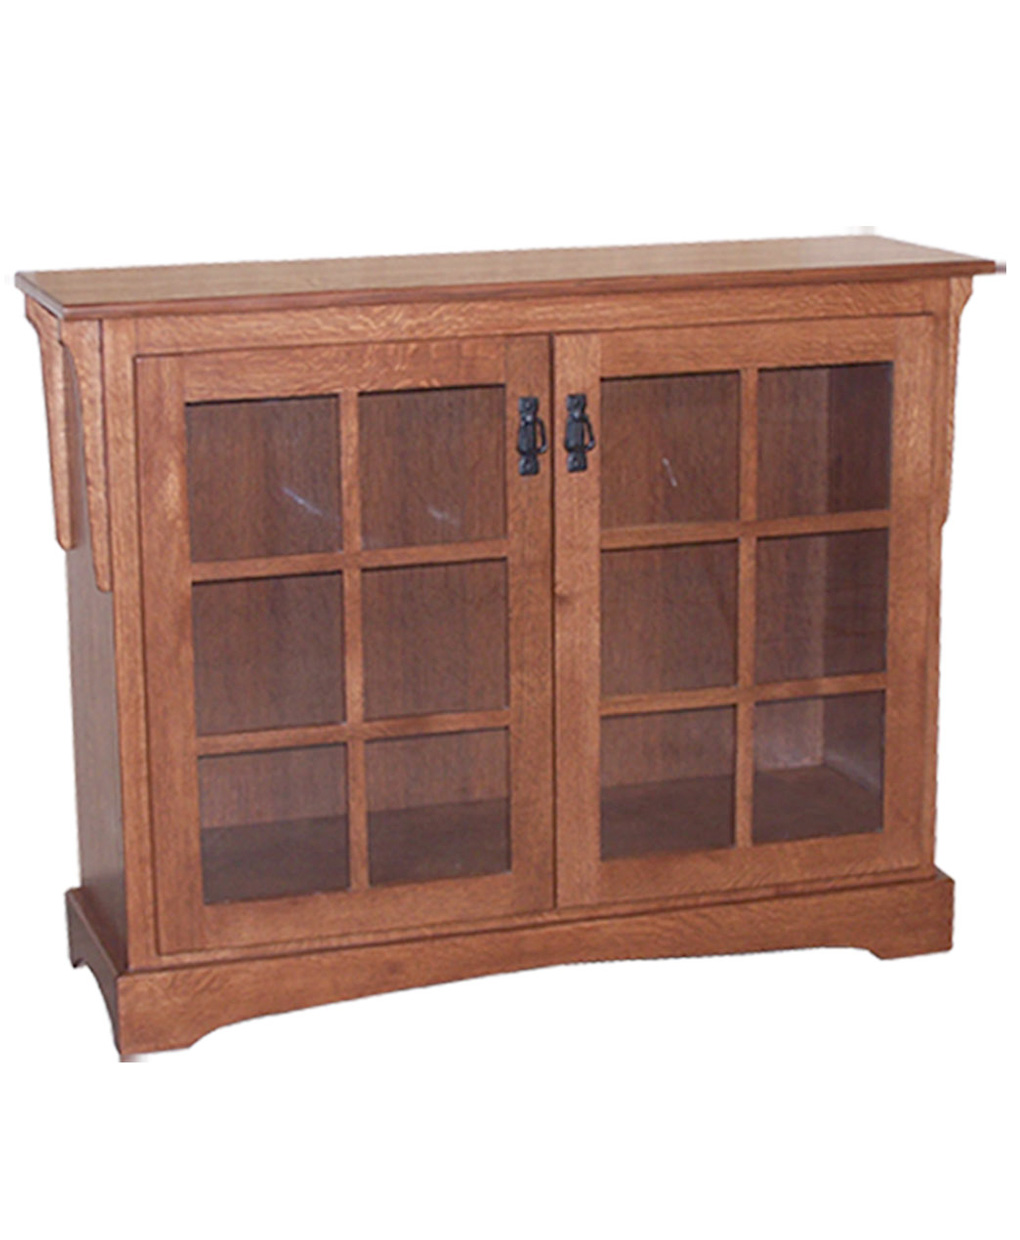 Small Mission Bookcase with Doors Amish Direct Furniture : SmallMissionBookcasewithDoors from amishdirectfurniture.com size 1020 x 1240 jpeg 183kB